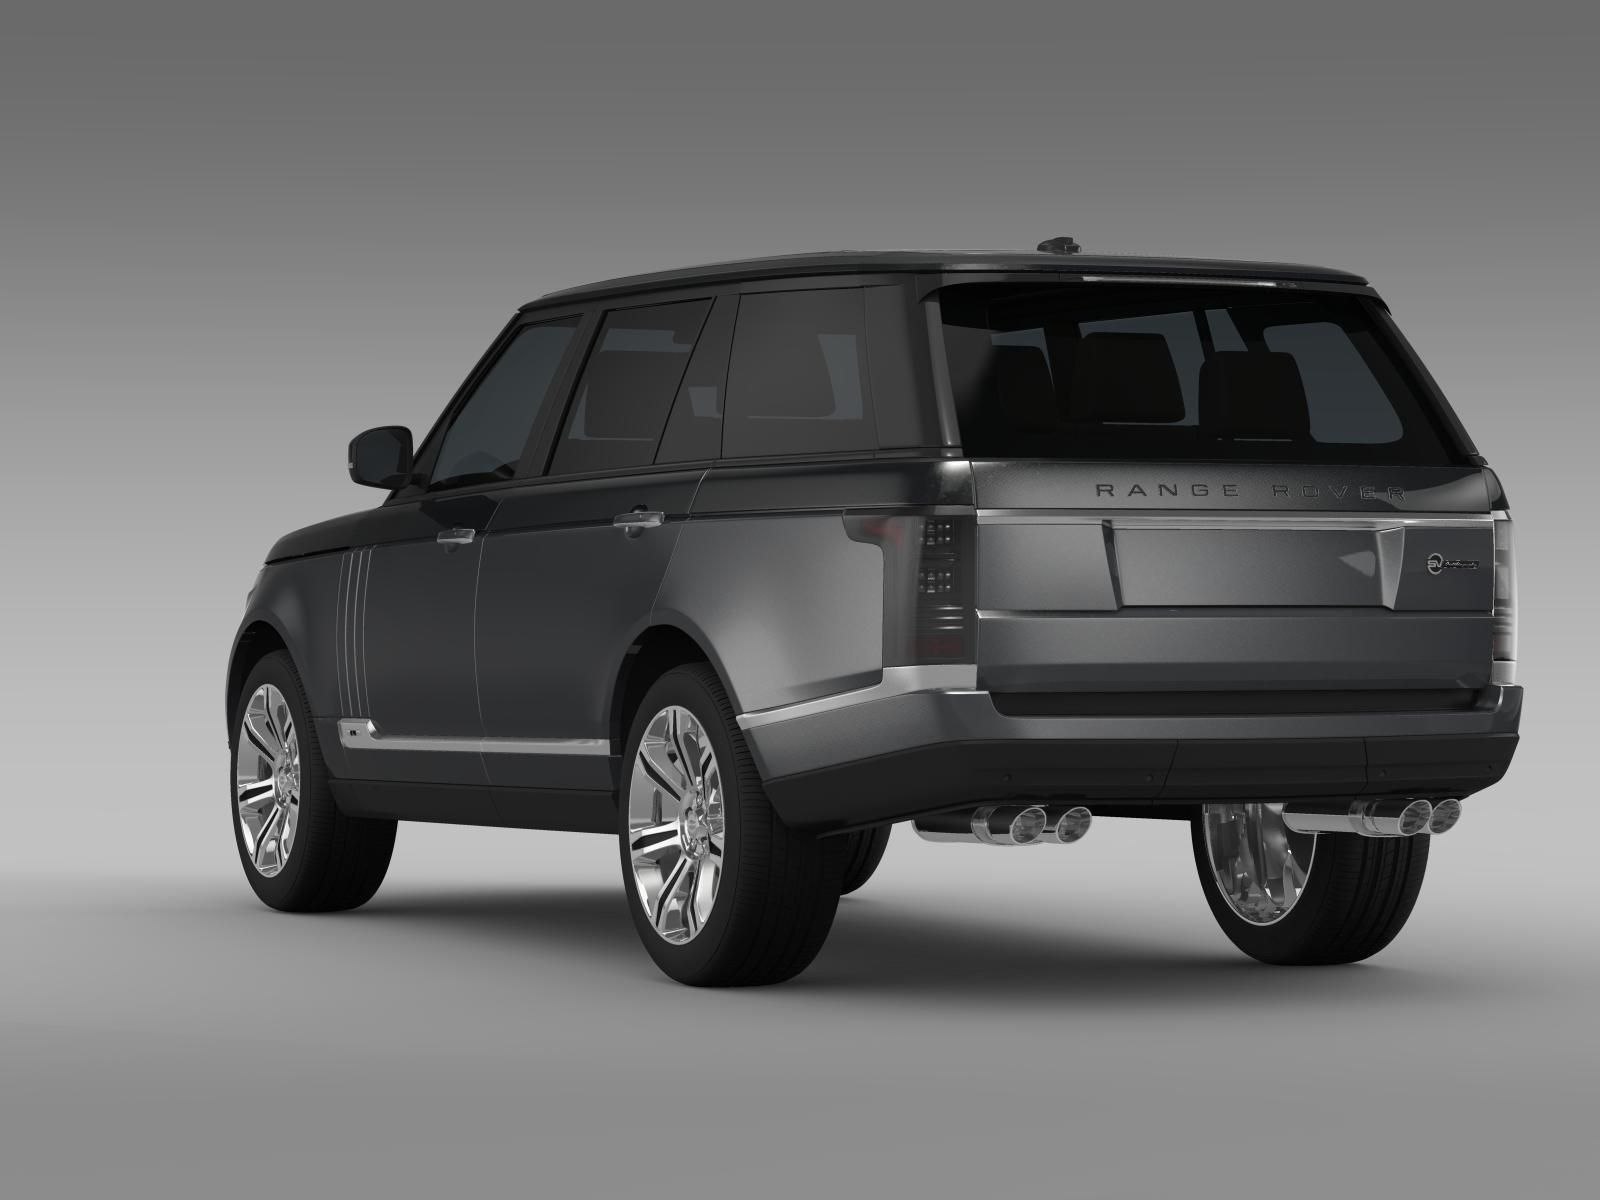 range rover svautobiography lwb l405 2016 3d model max obj 3ds fbx c4d lwo lw lws. Black Bedroom Furniture Sets. Home Design Ideas